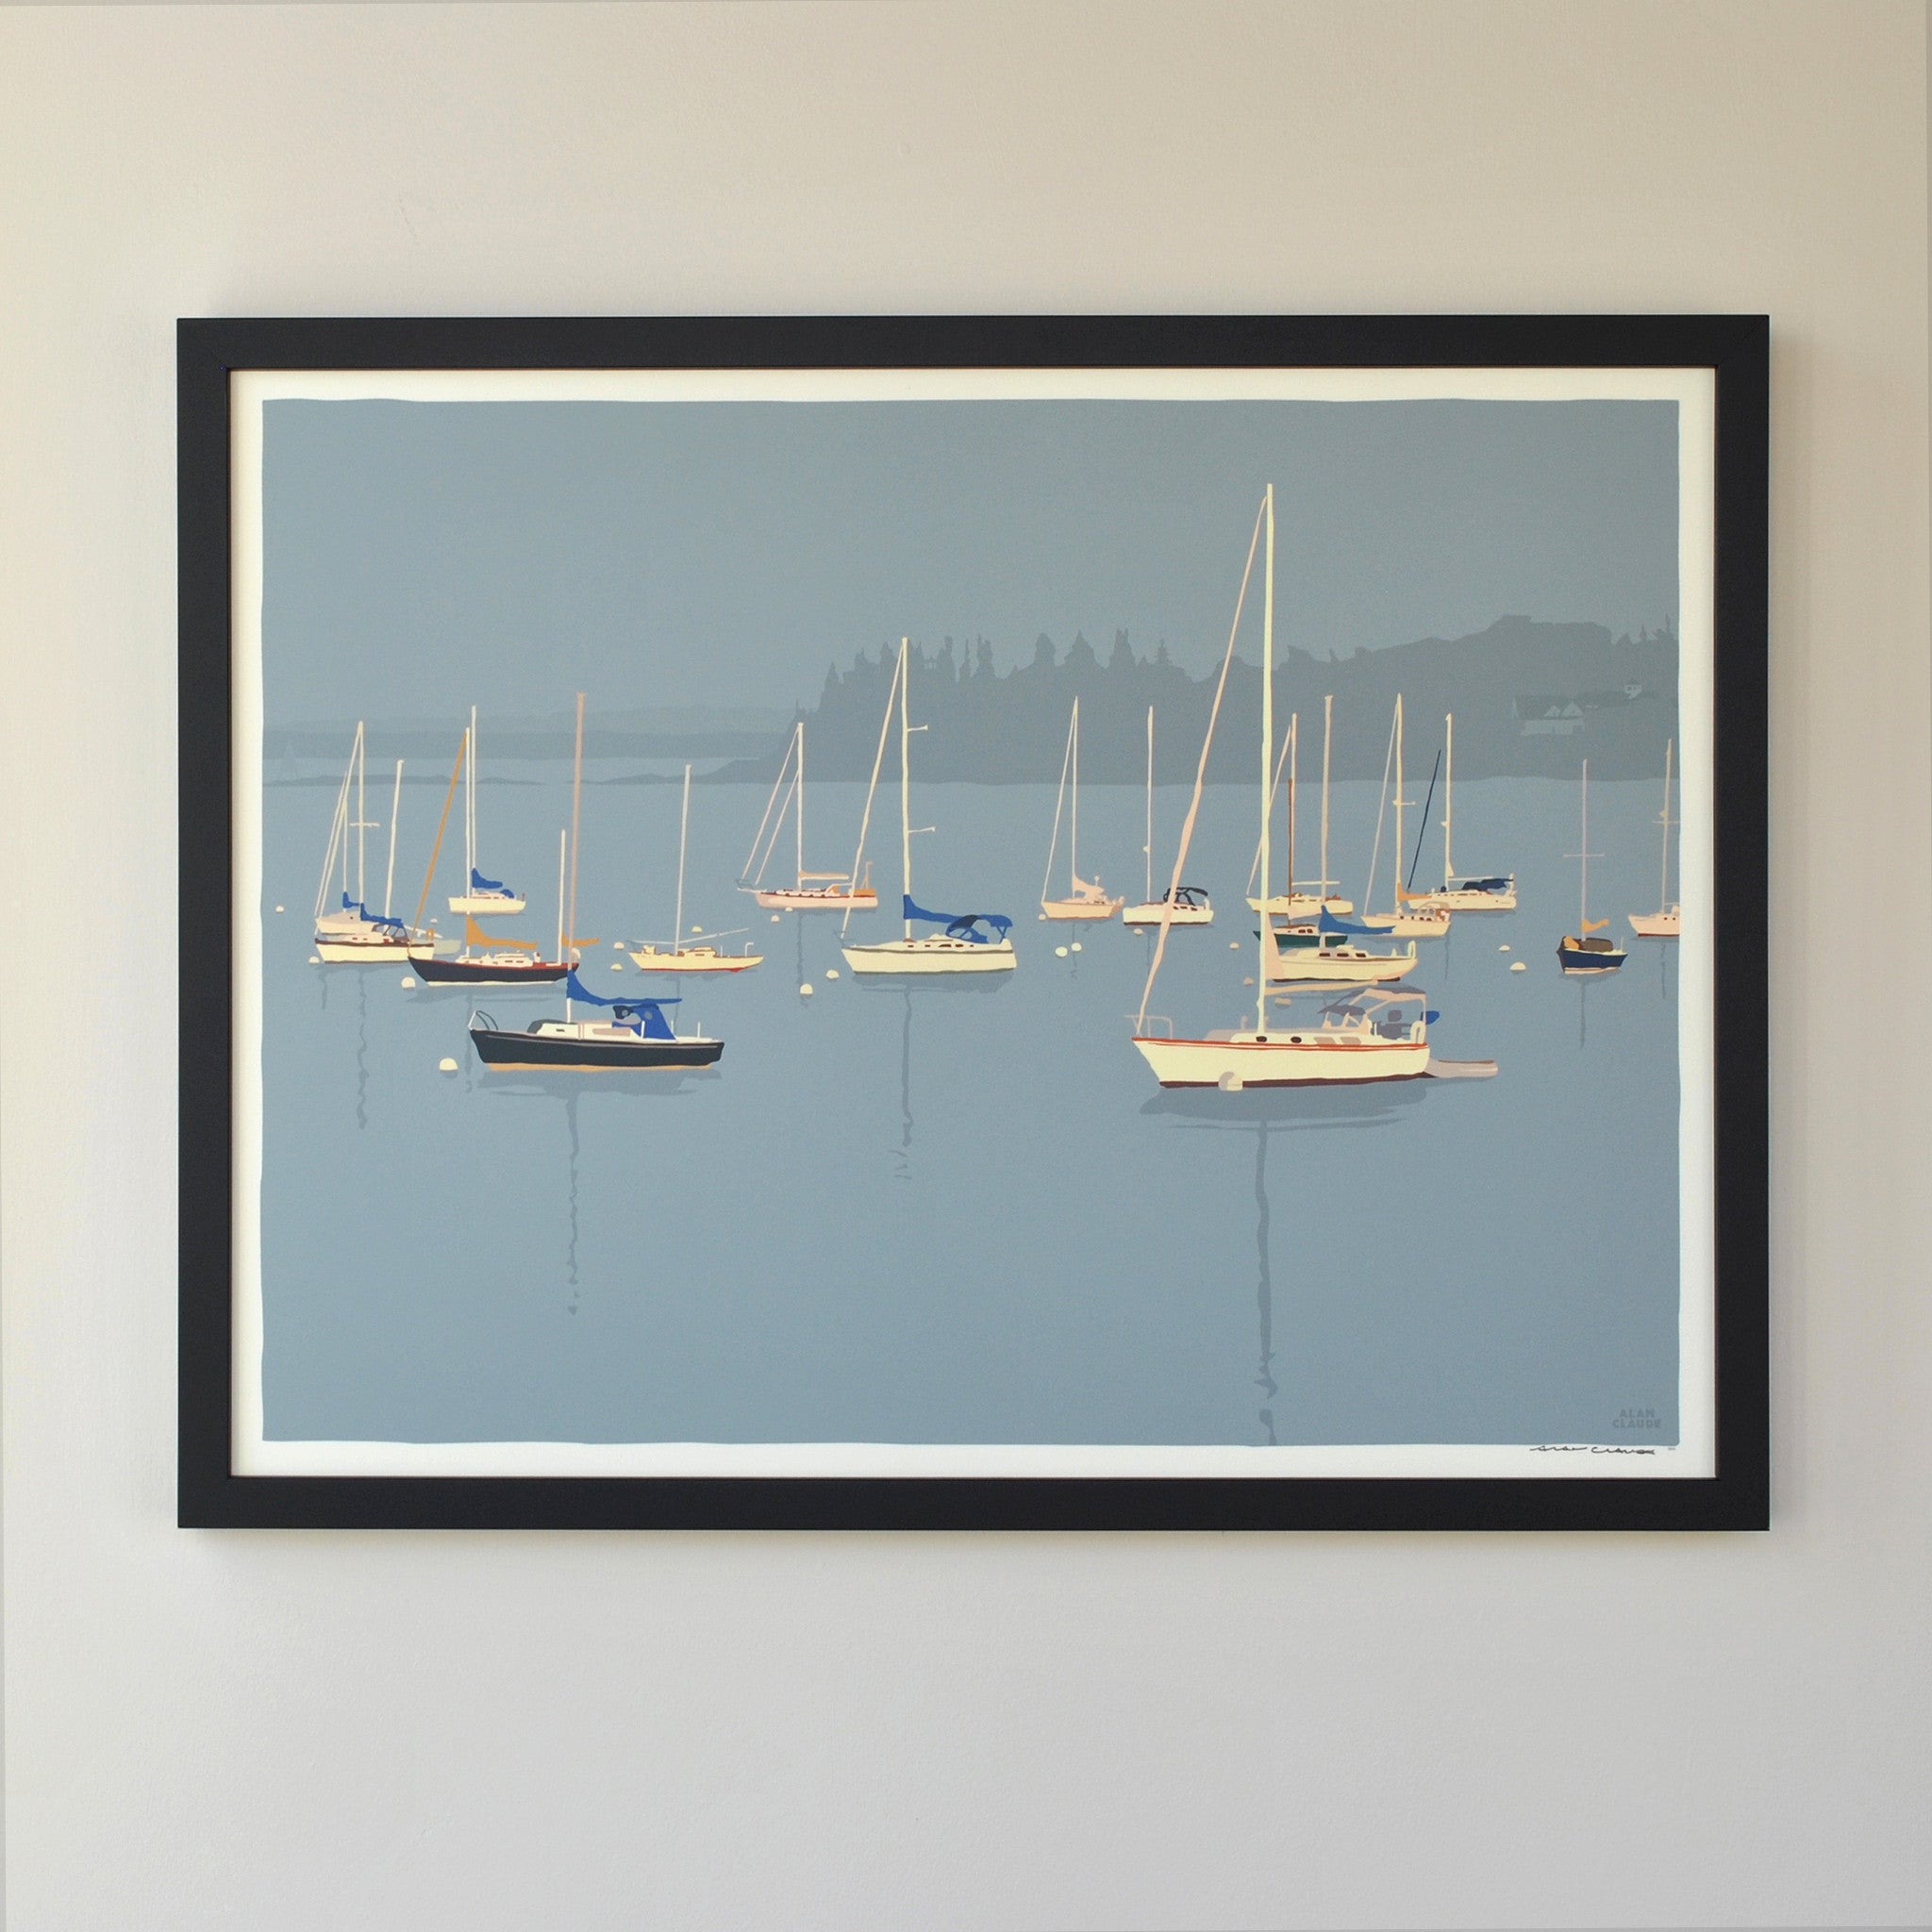 "Sailboats in Rockland Harbor Art Print 18"" x 24"" Framed Wall Poster - Maine"